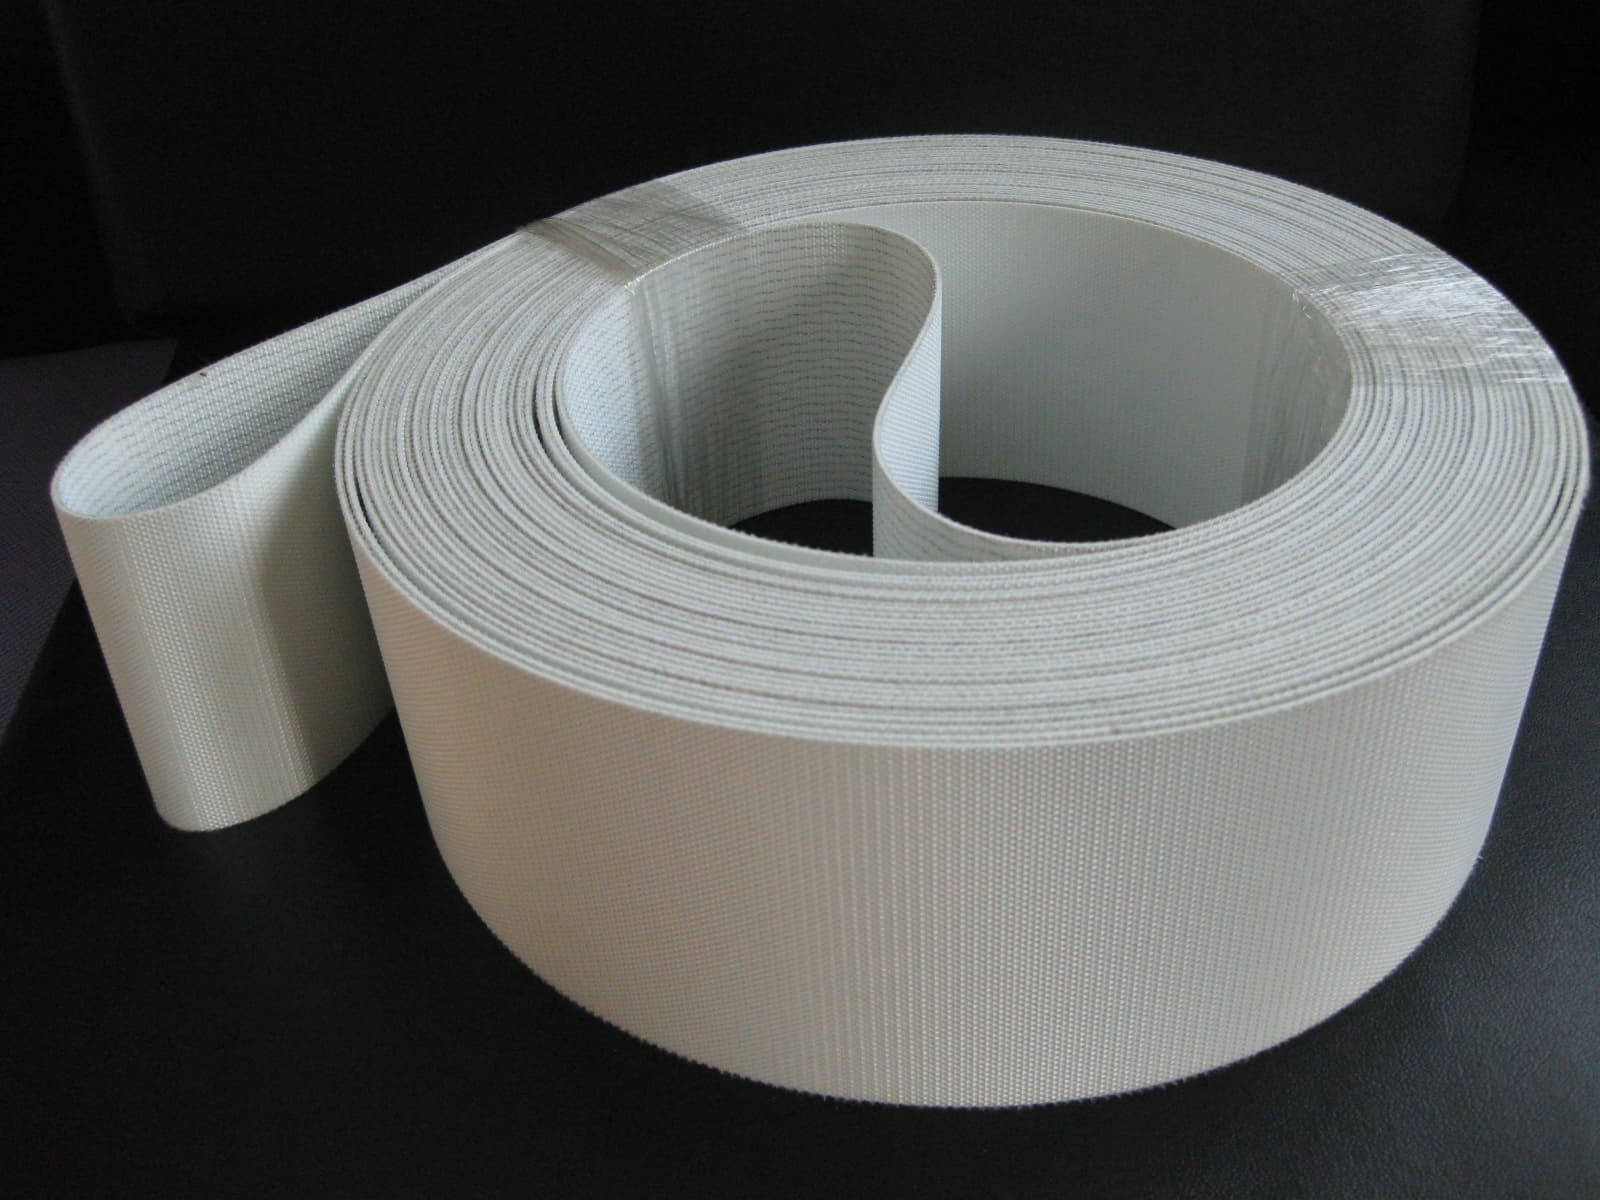 SPINDLE TAPE AND TANGENTIAL BELT